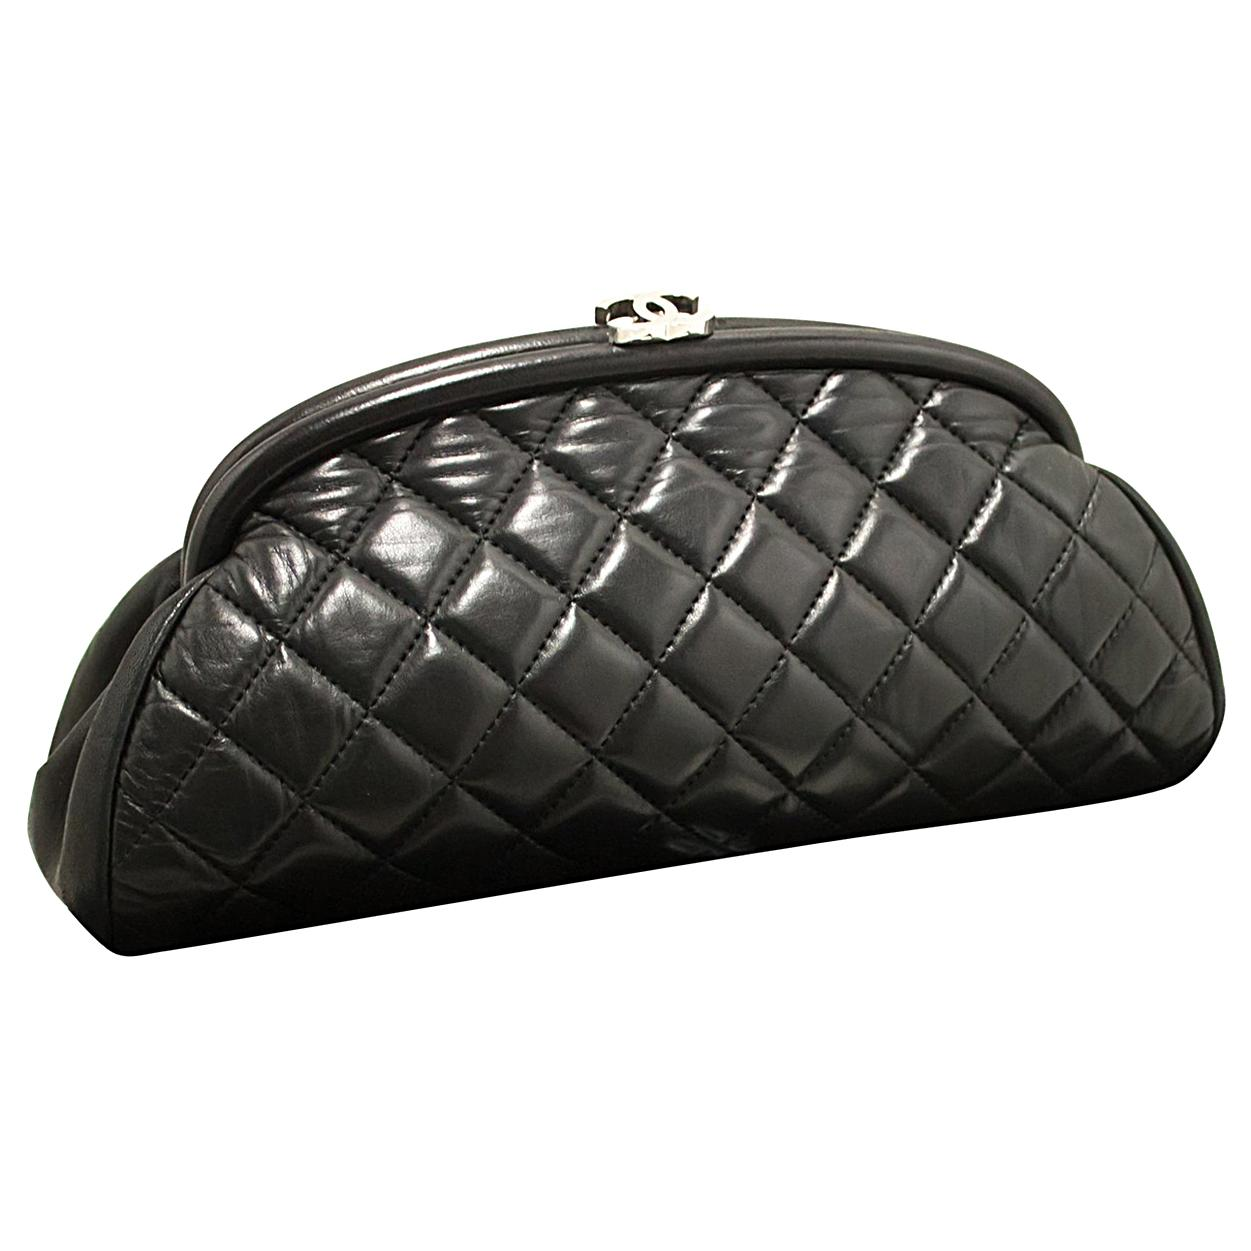 69093fd72835 Chanel lambskin timeless clutch bag black quilted leather silver for sale  jpg 768x768 Timeless clutch